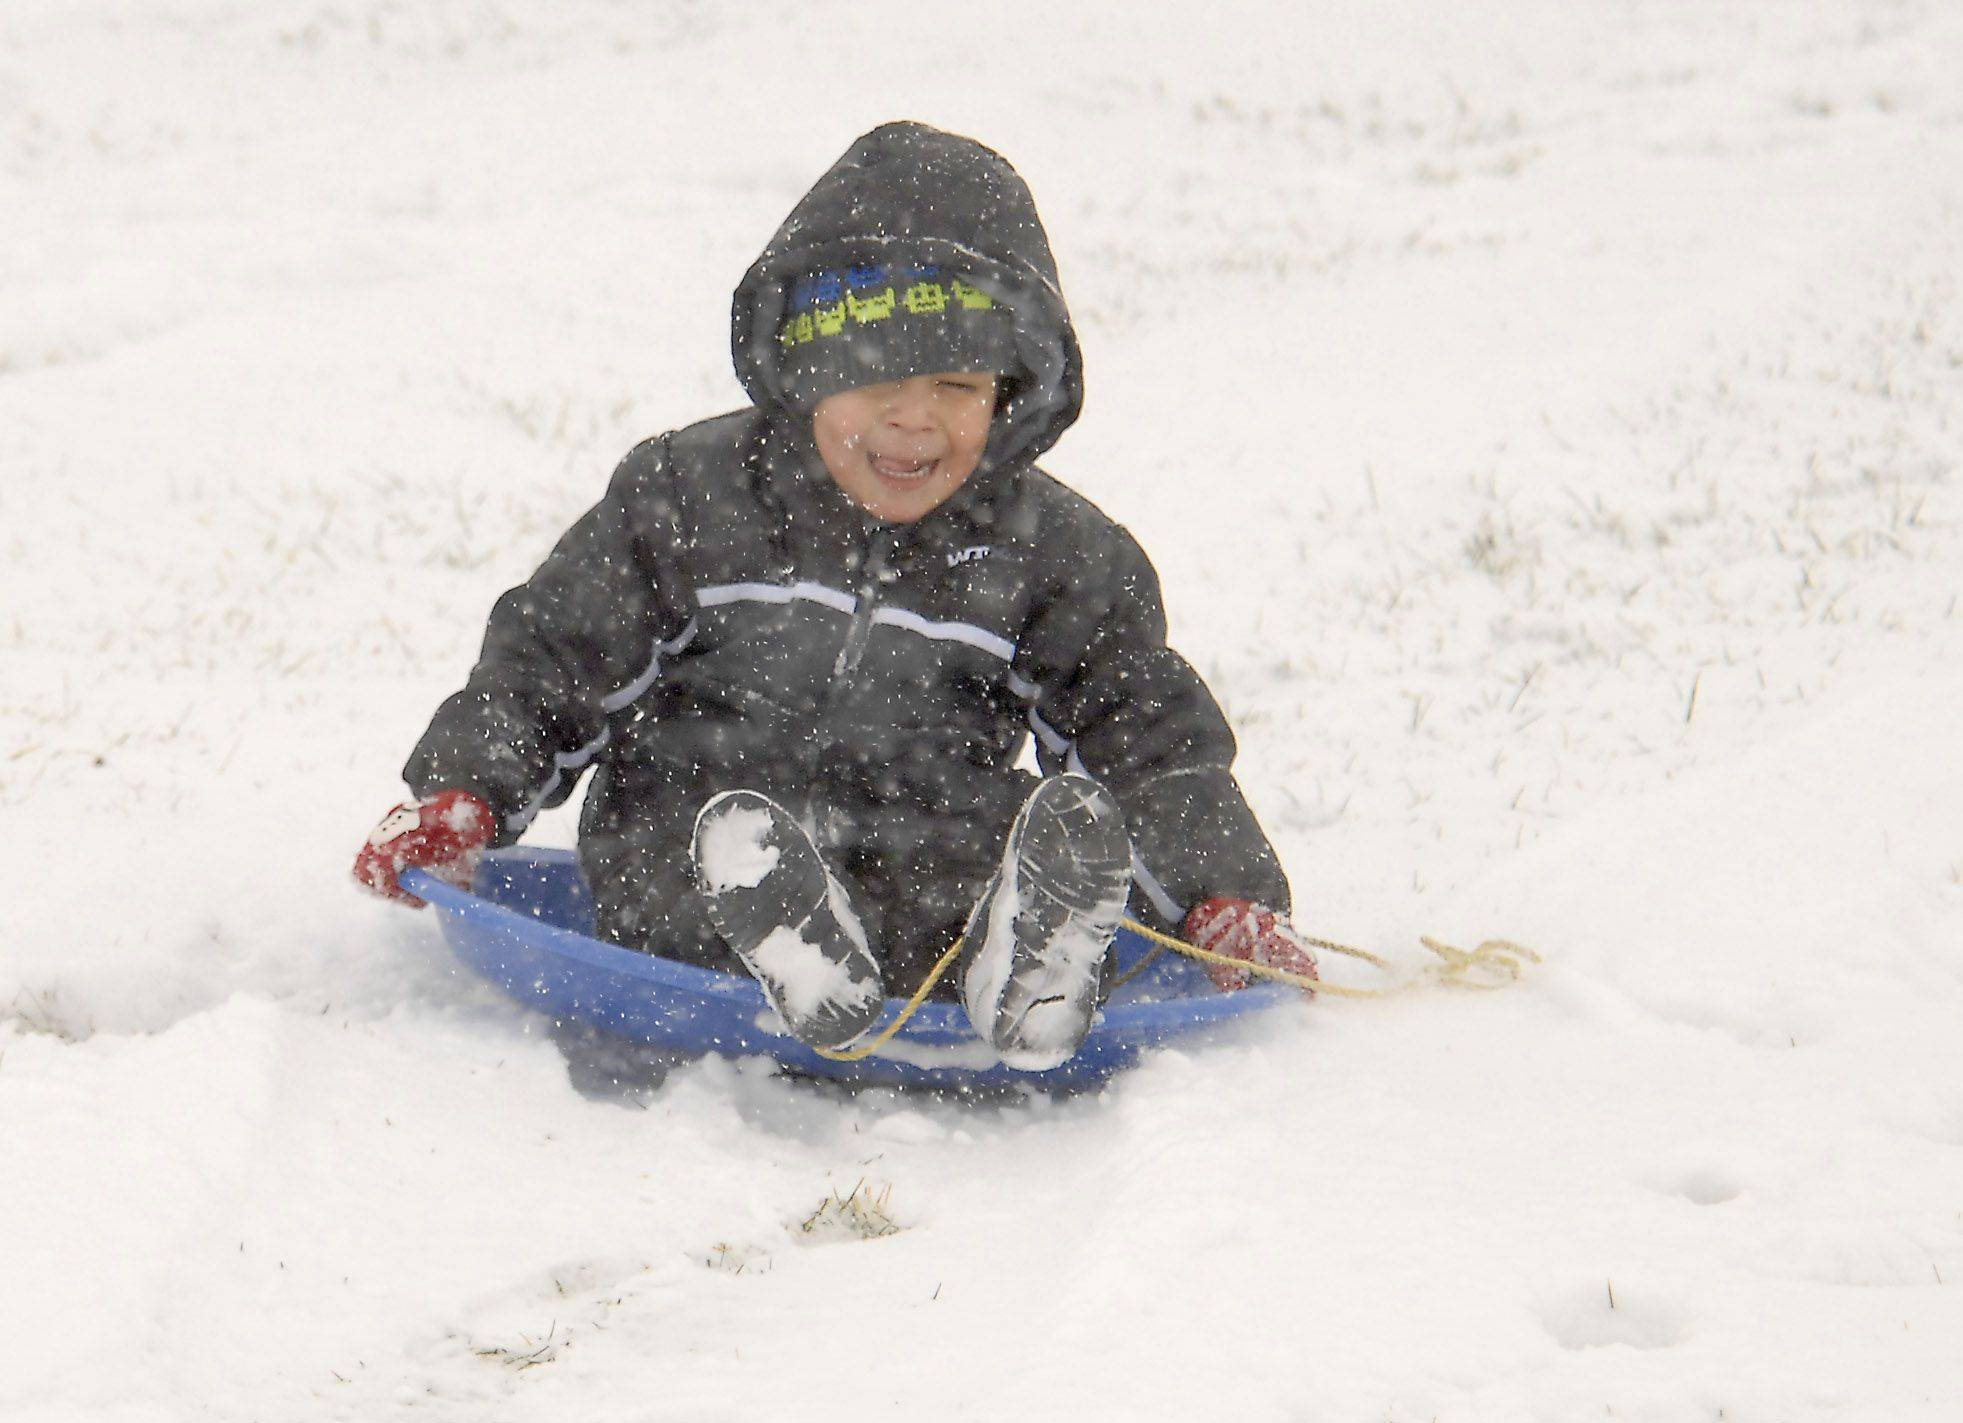 Eric Marron, 3, of Rolling Meadows gets his first crack at sledding this winter Thursday afternoon at Sunset Meadows Park in Arlington Heights.